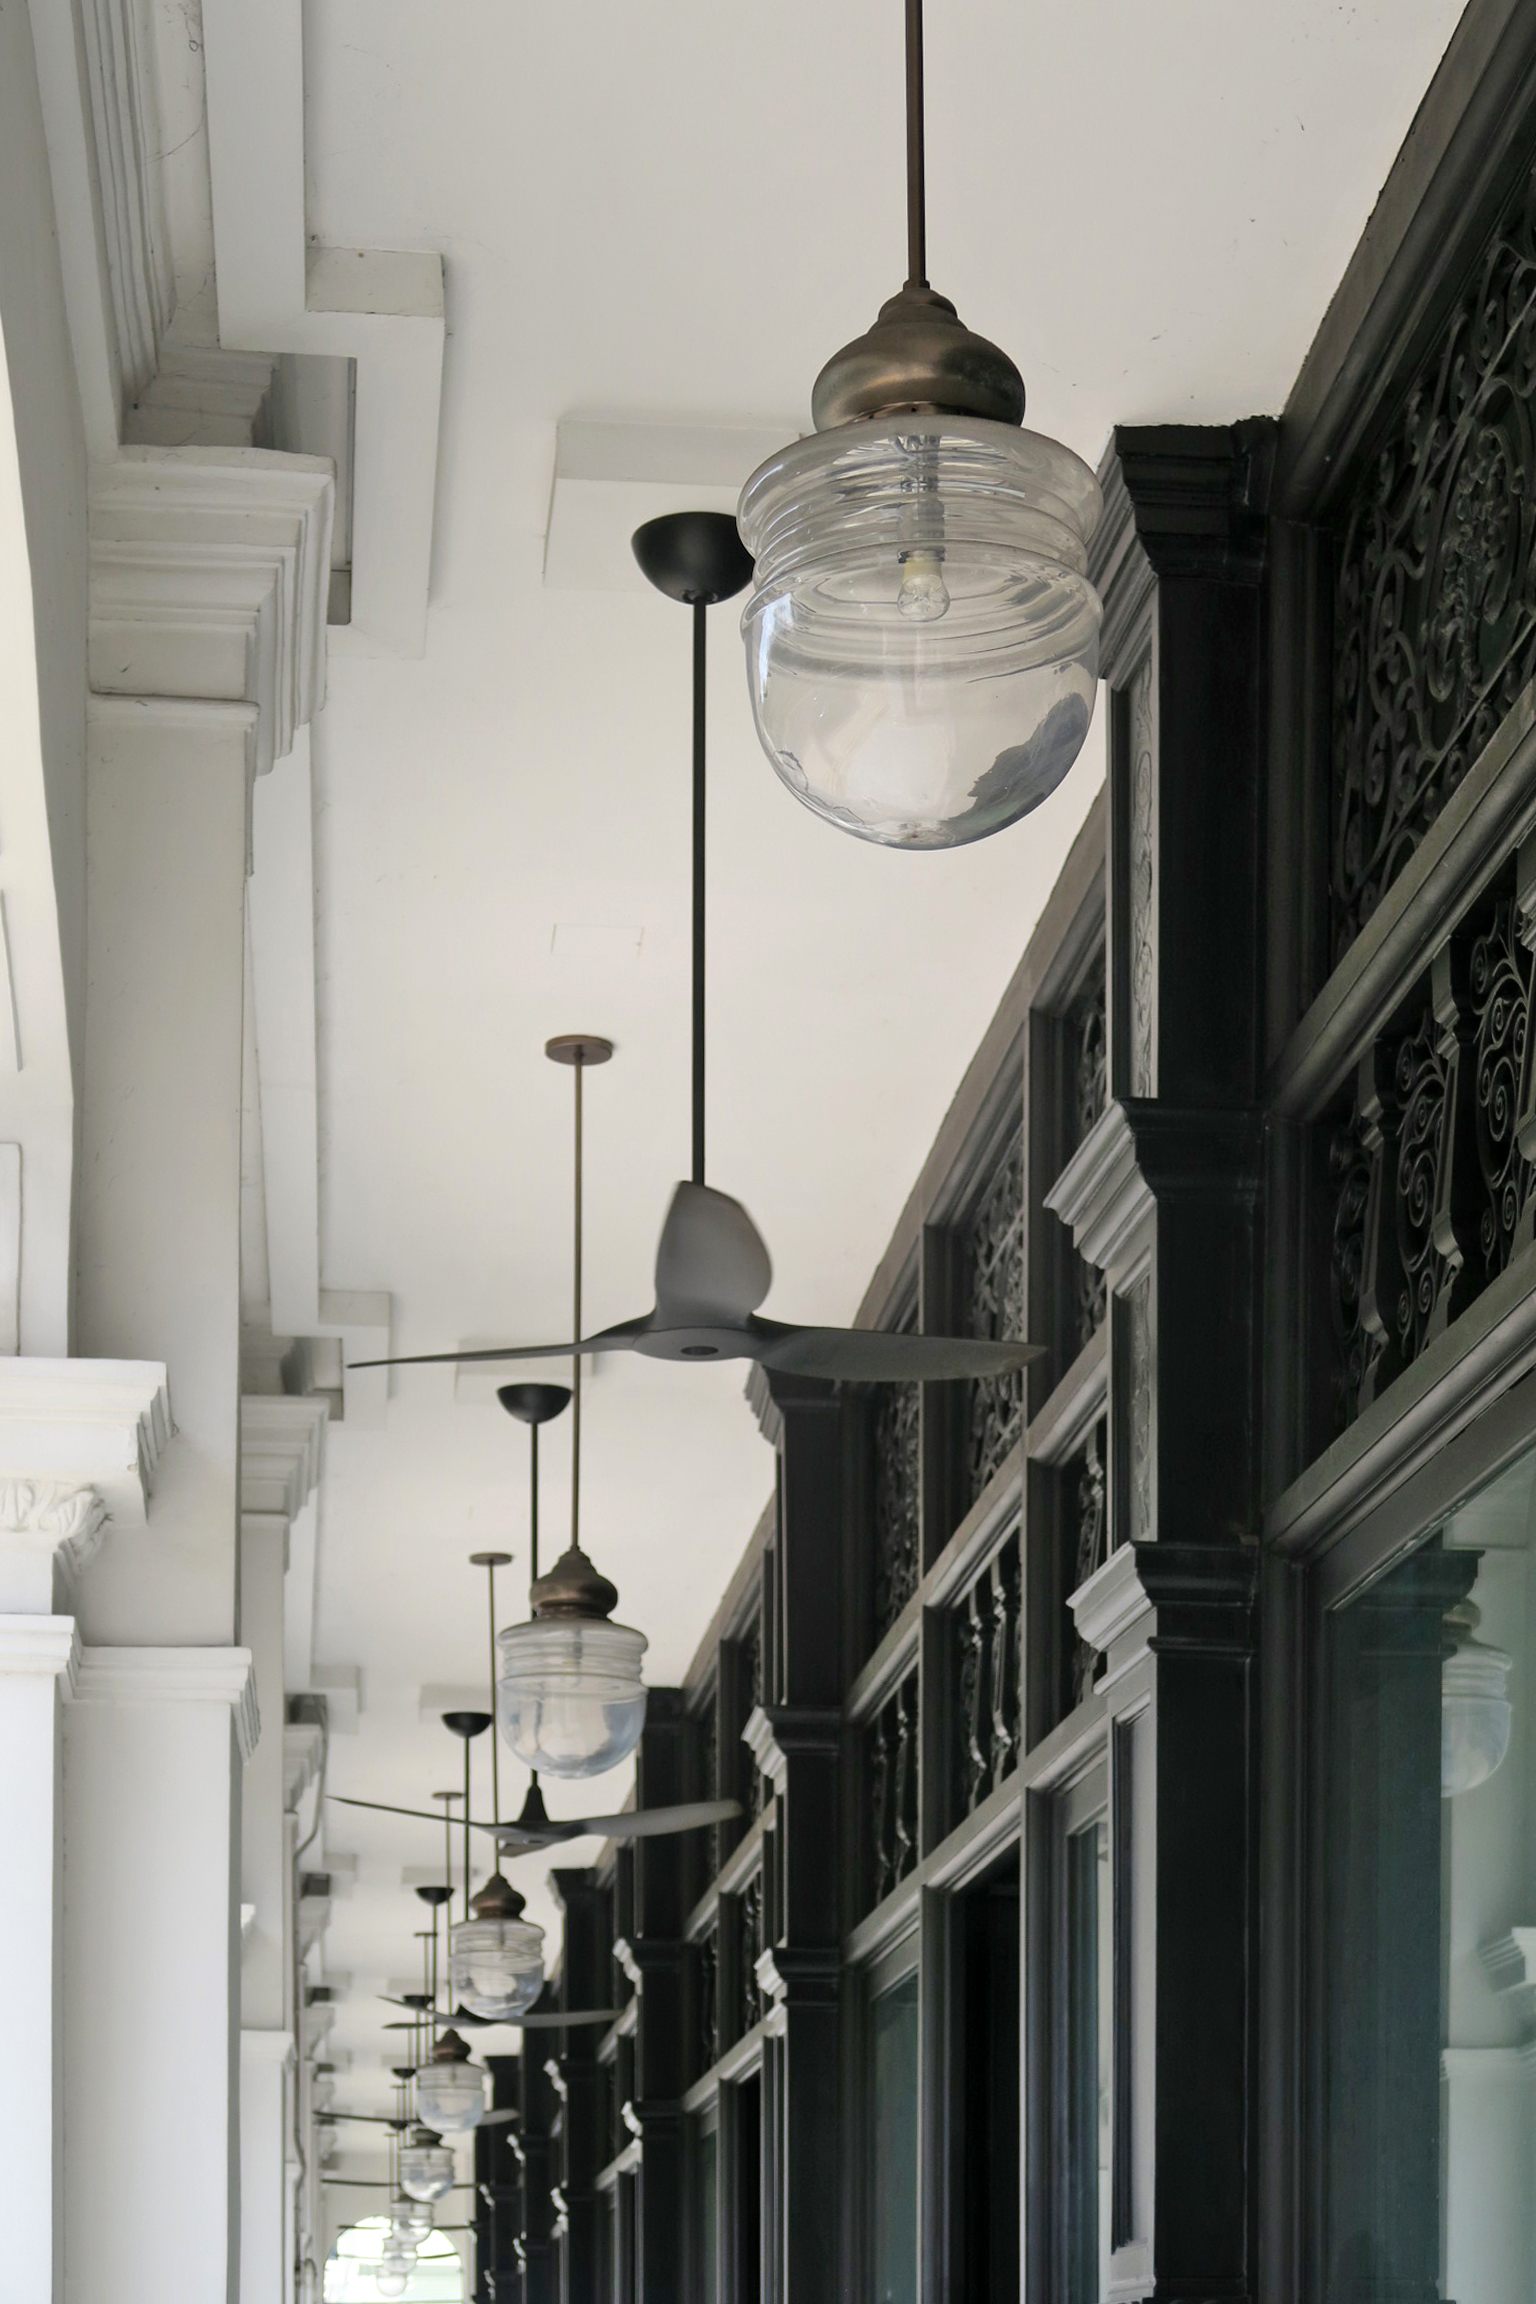 Fans and lamps along the corridor of Stamford House